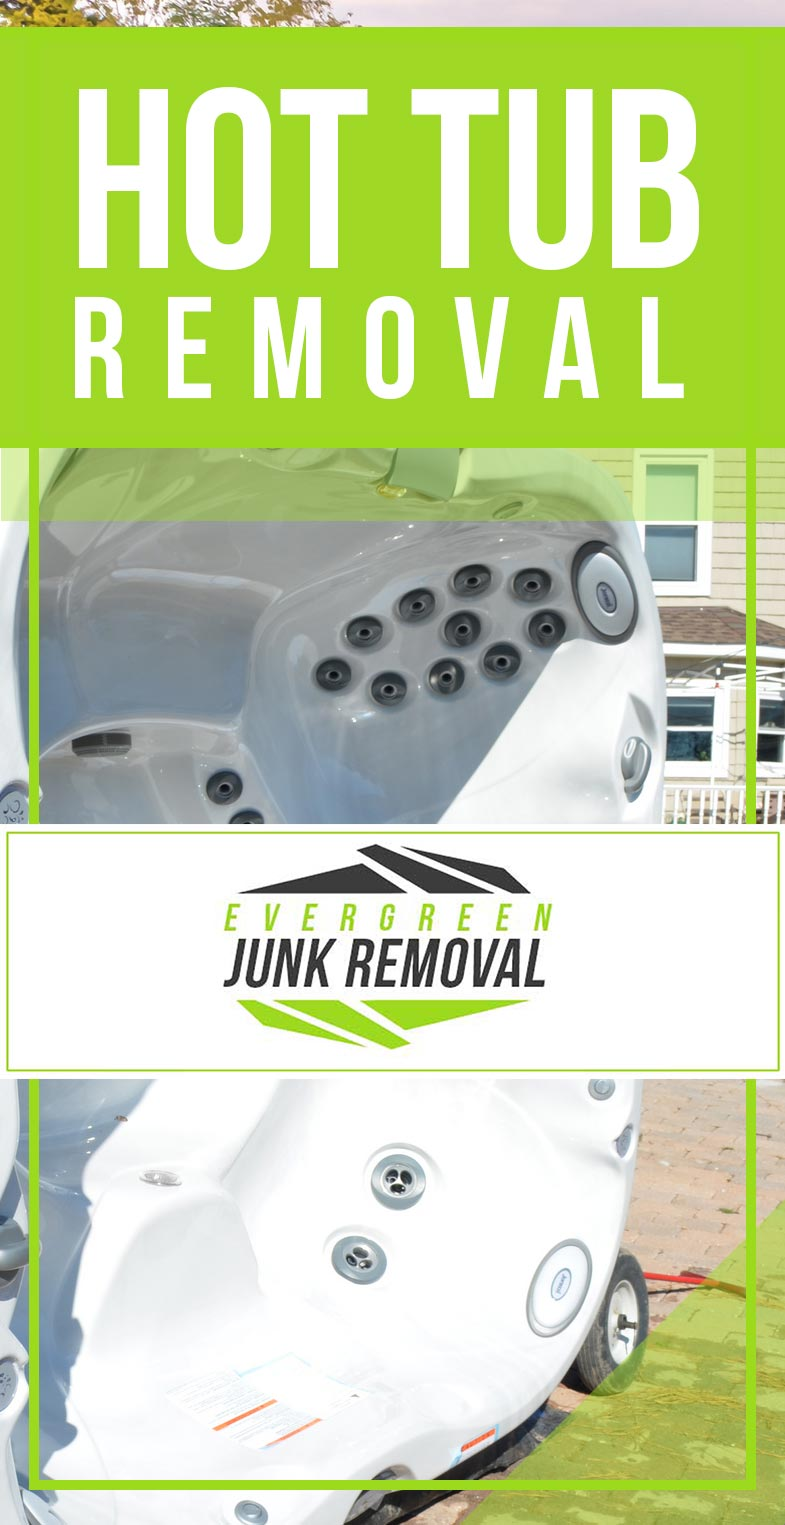 West Omaha Hot Tub Removal